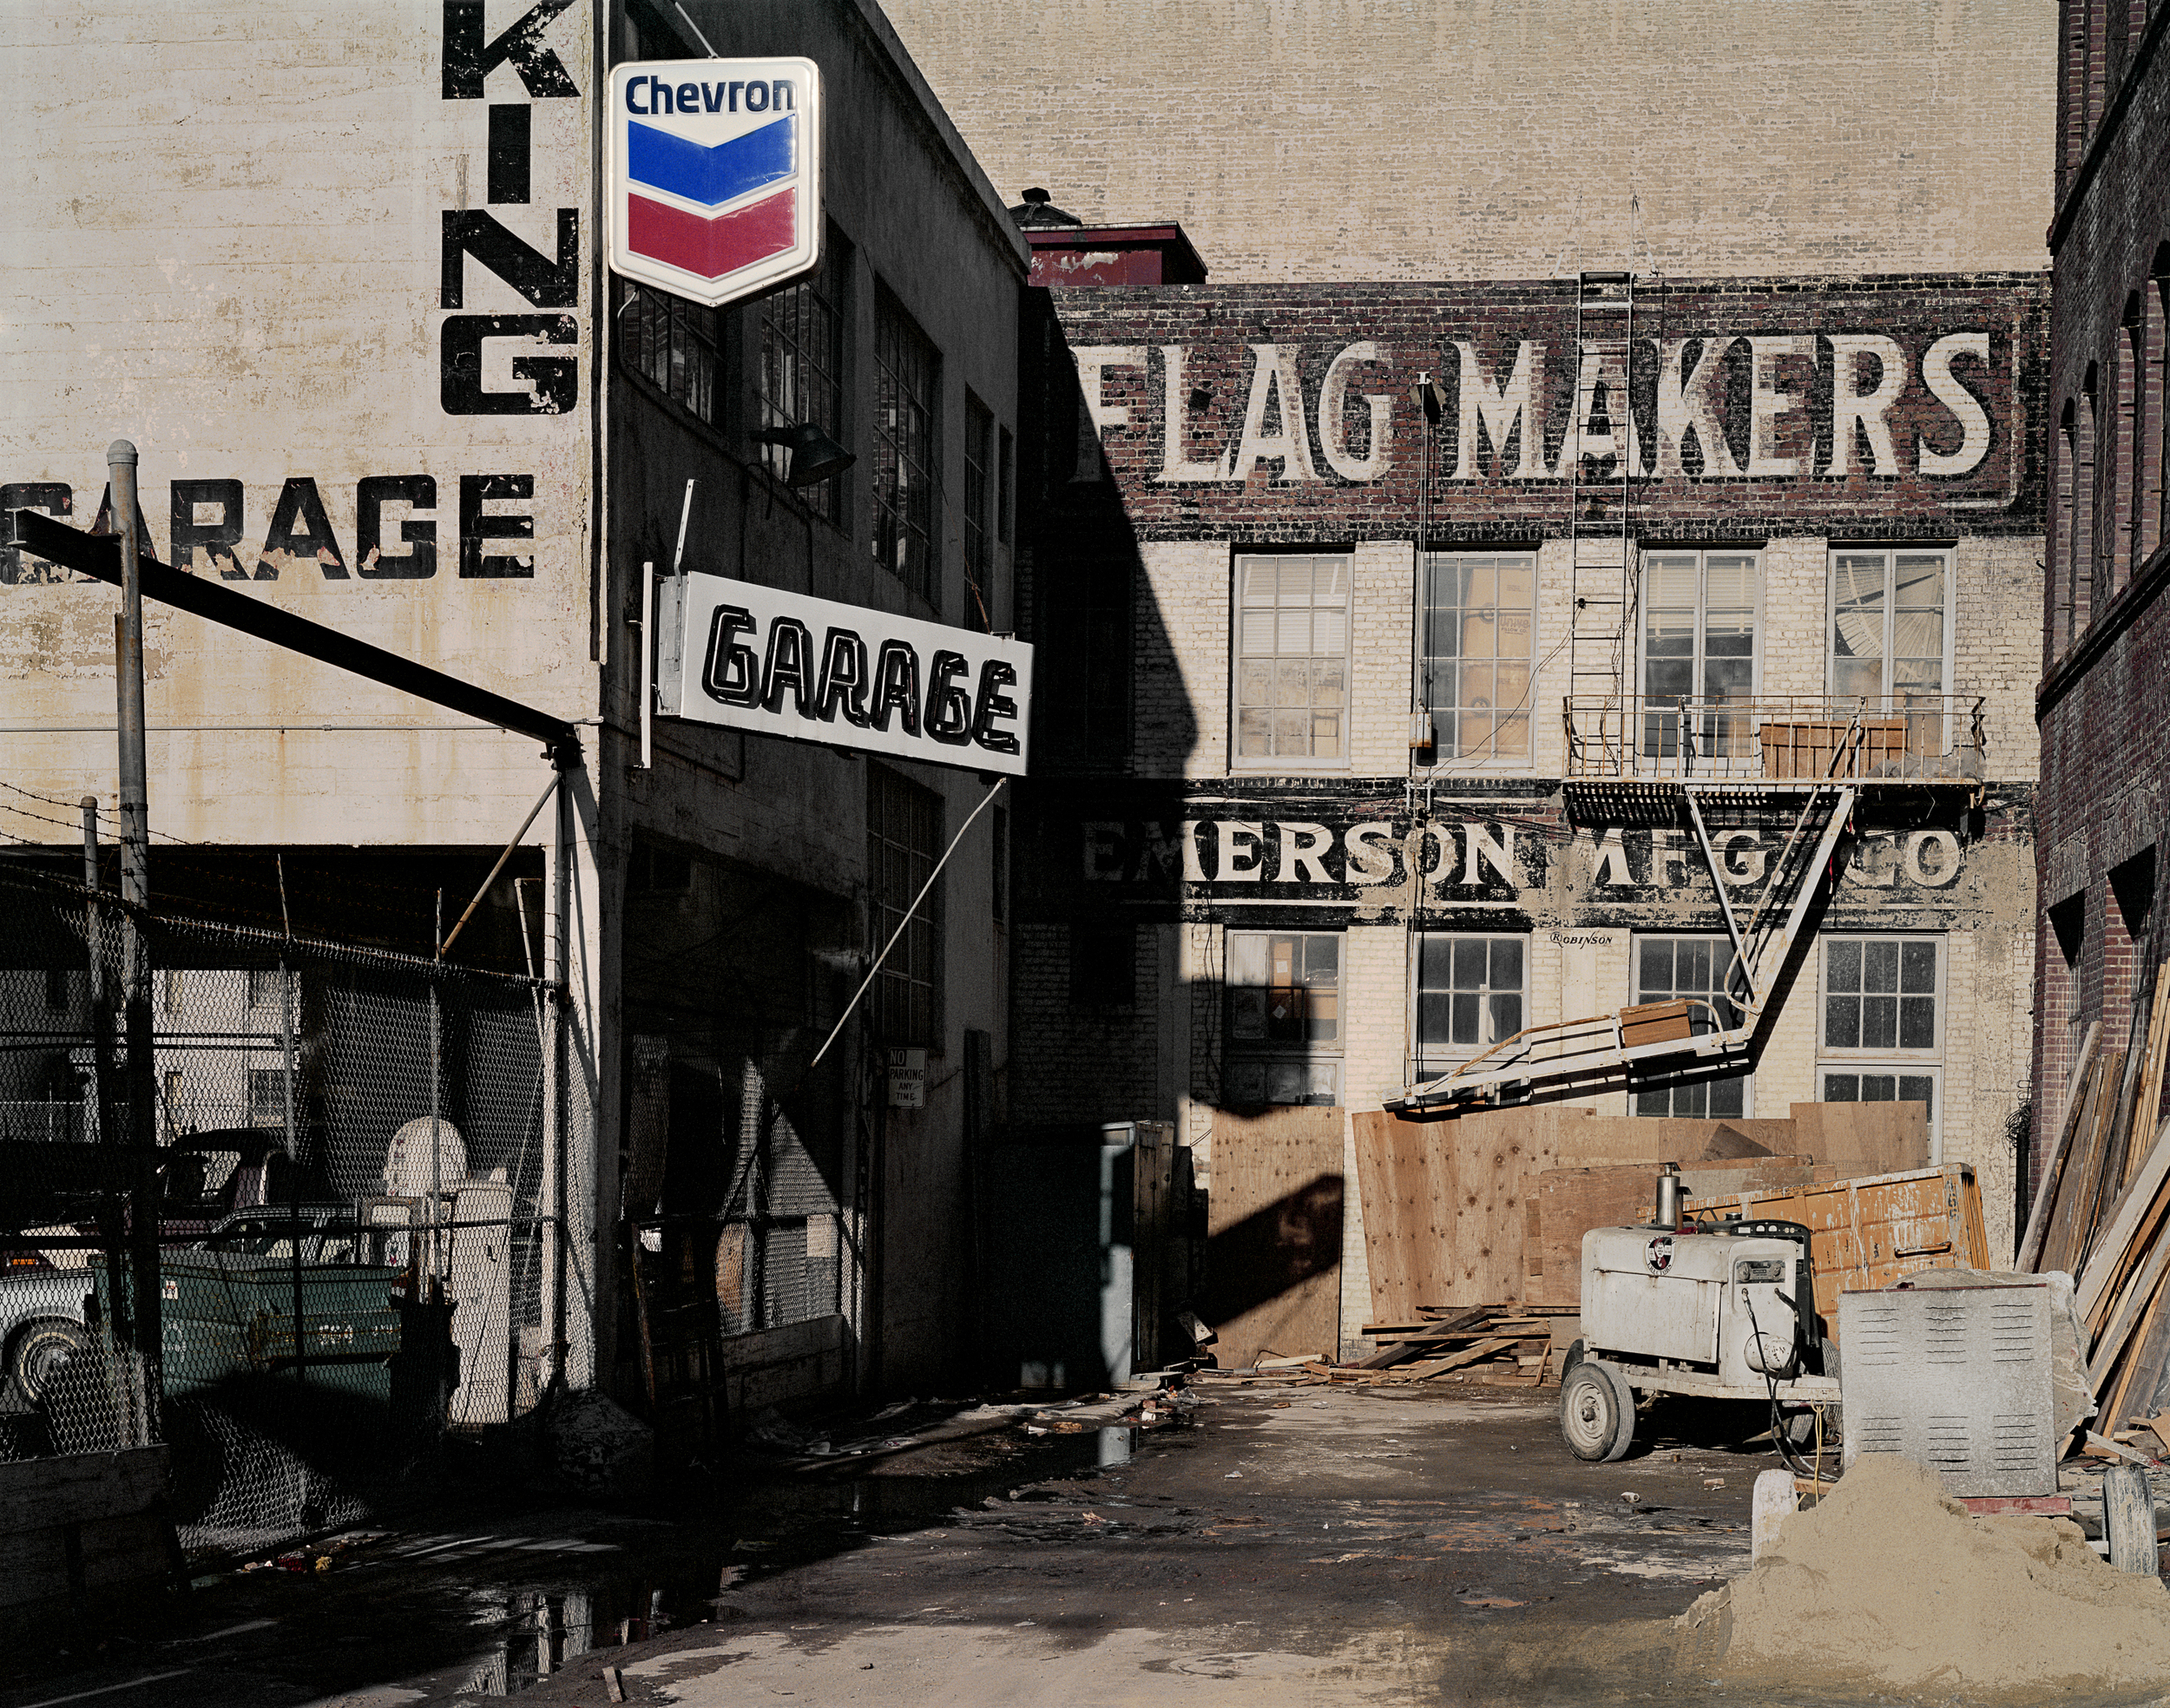 JANET DELANEY Flag Makers, Natoma at 3rd Street, 1982 Archival Pigment Print, 2016 16 x 20 inches, edition of 5 20 x 24 inches, edition of 2 30 x 40 inches, edition of 2